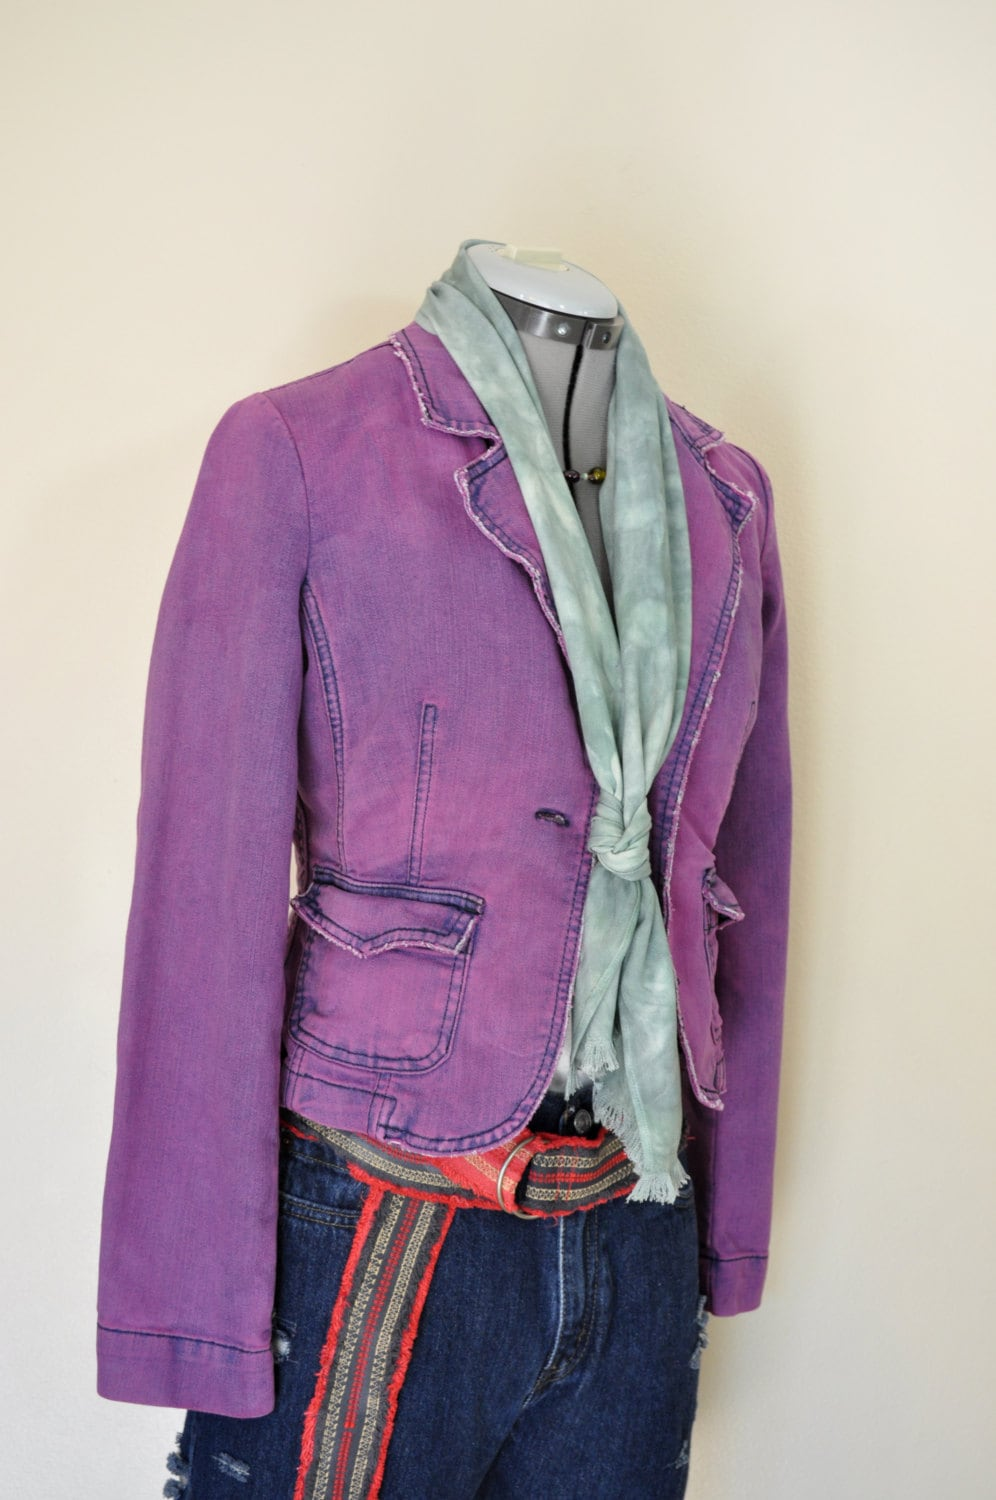 You searched for: purple denim jacket! Etsy is the home to thousands of handmade, vintage, and one-of-a-kind products and gifts related to your search. No matter what you're looking for or where you are in the world, our global marketplace of sellers can help you .